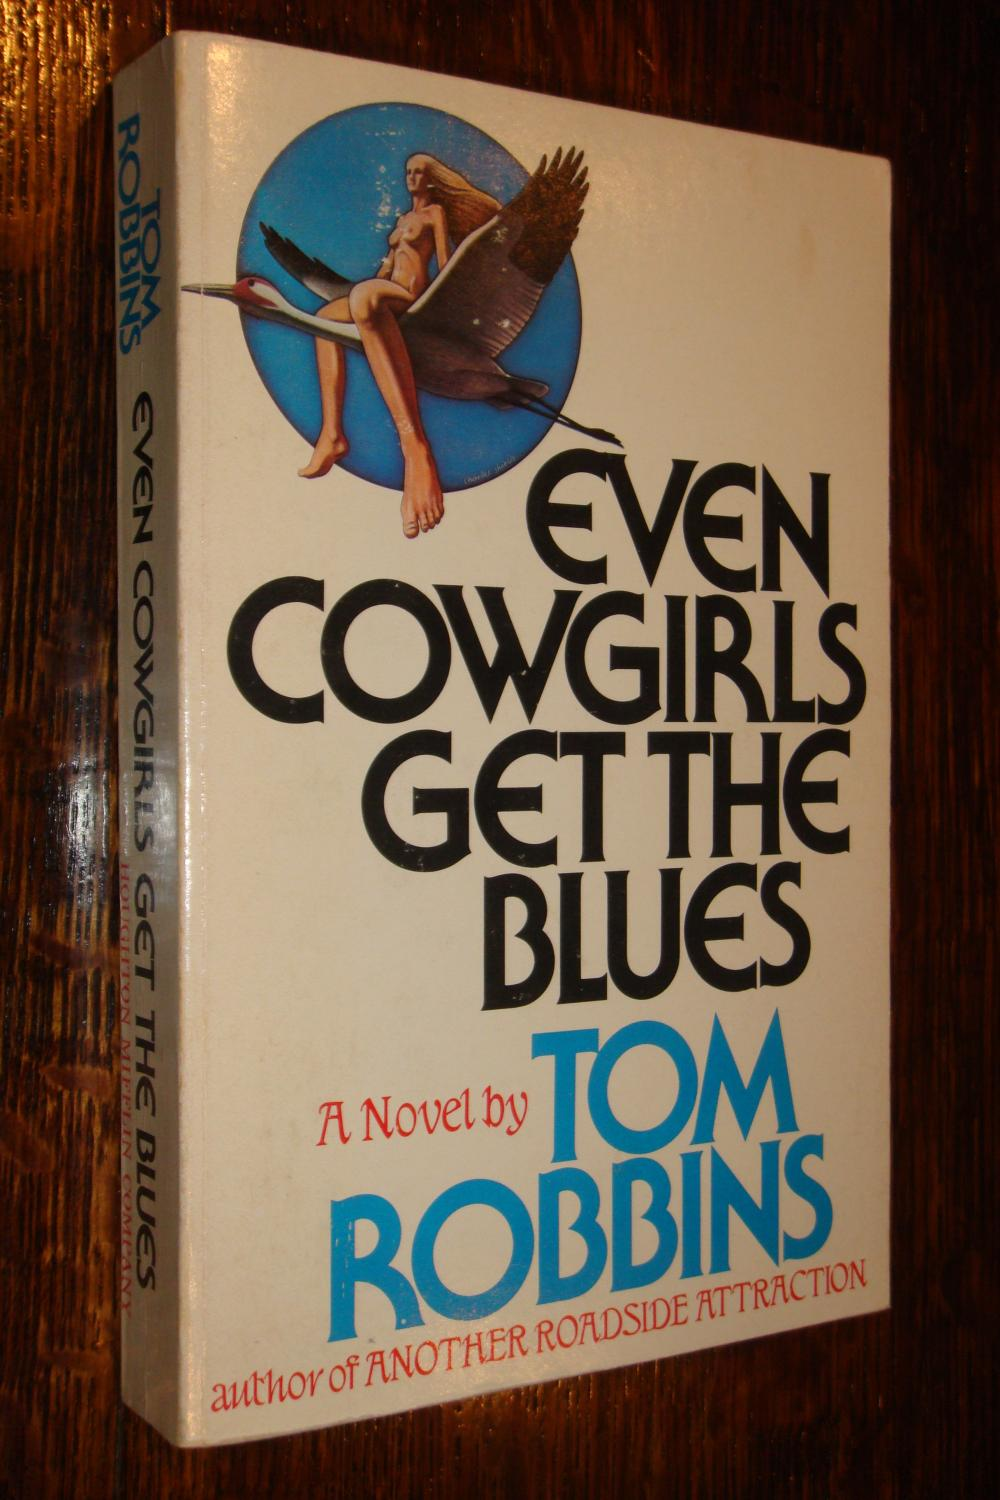 Image result for even cowgirls get the blues book cover""